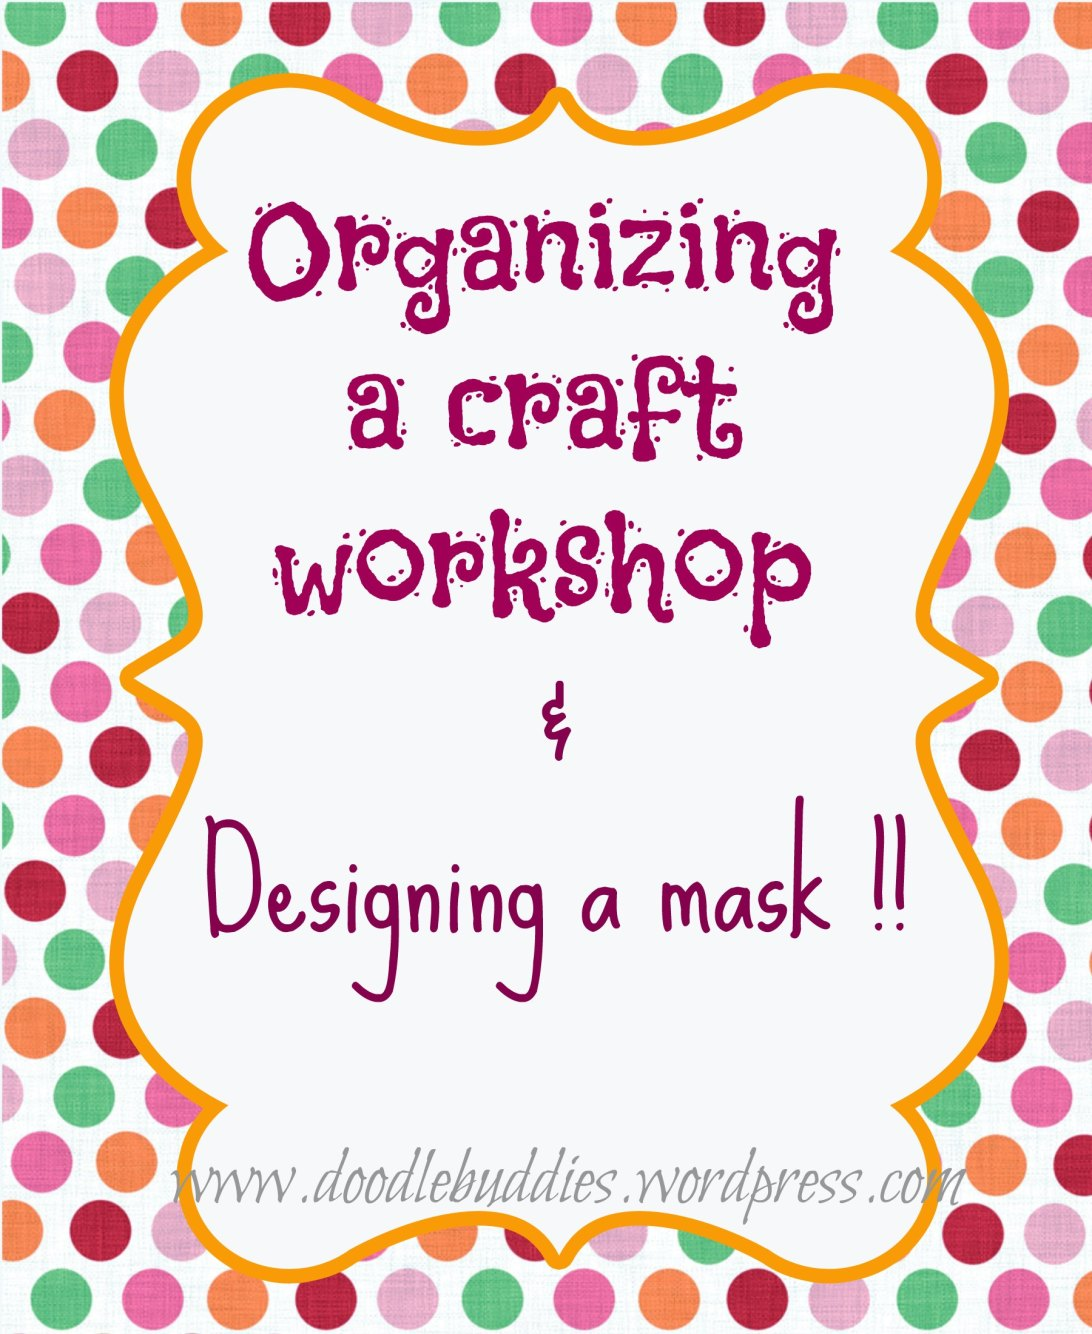 organizing-craft-workshop-and-designing-a-mask